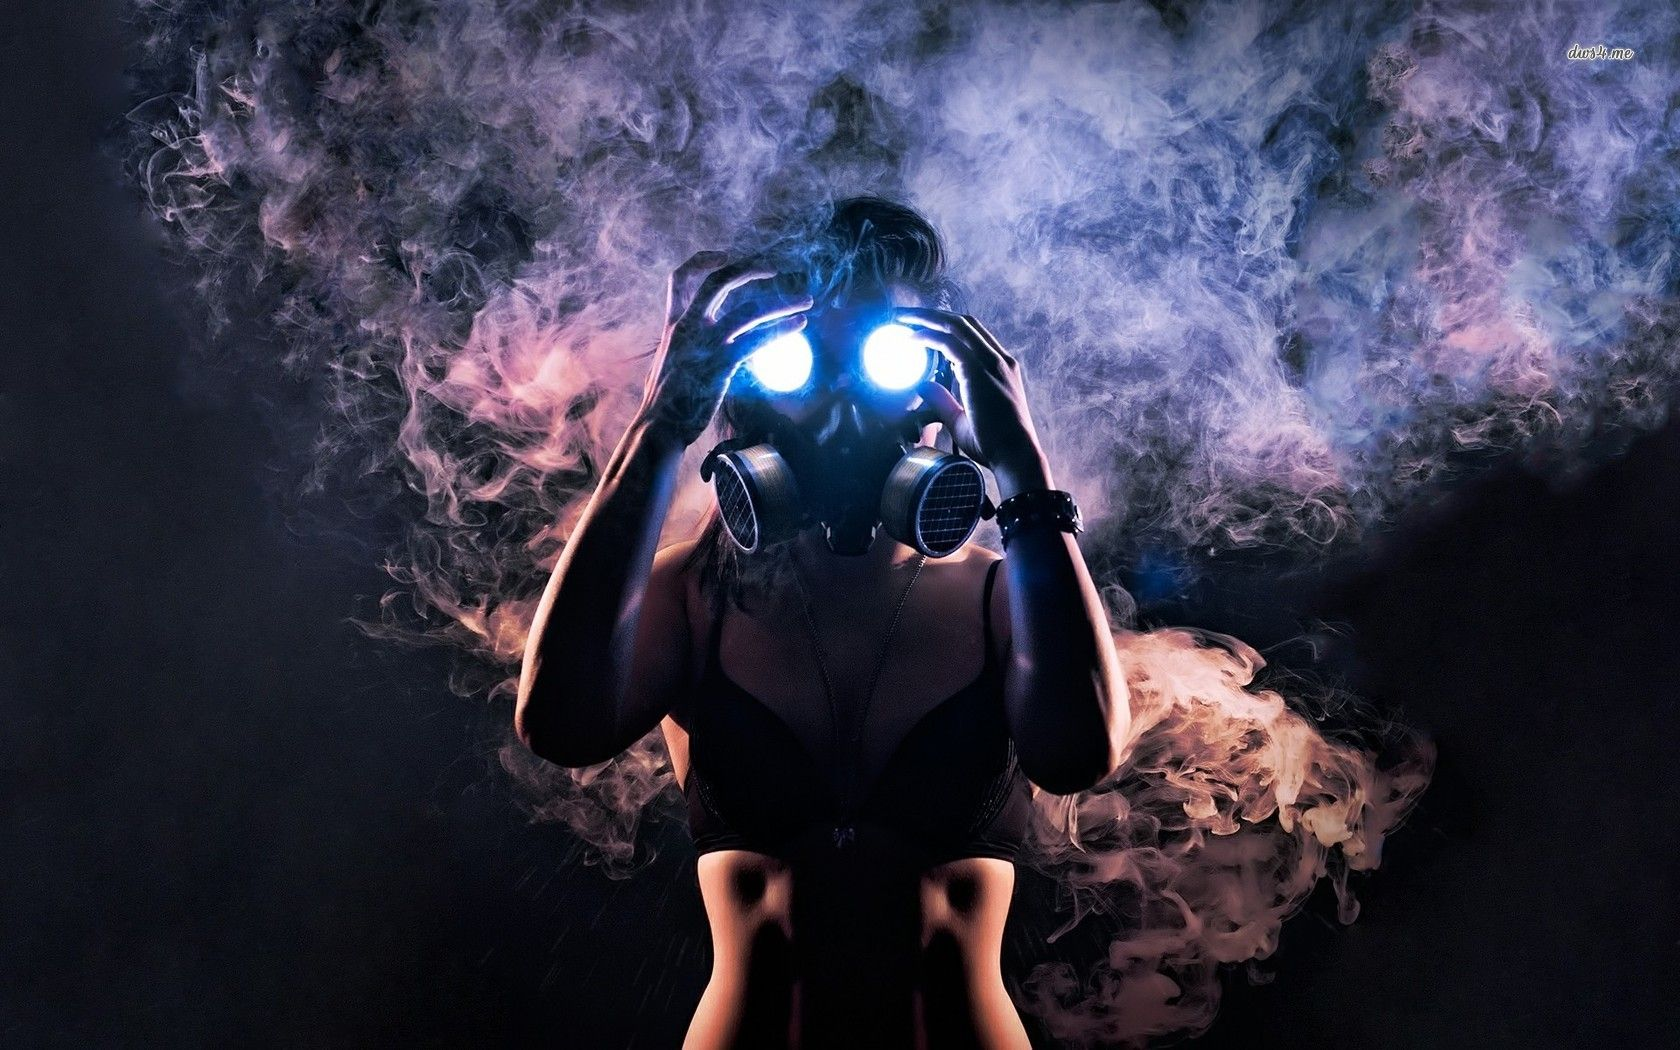 Woman in gas mask HD wallpaper Gas mask girl, Gas mask